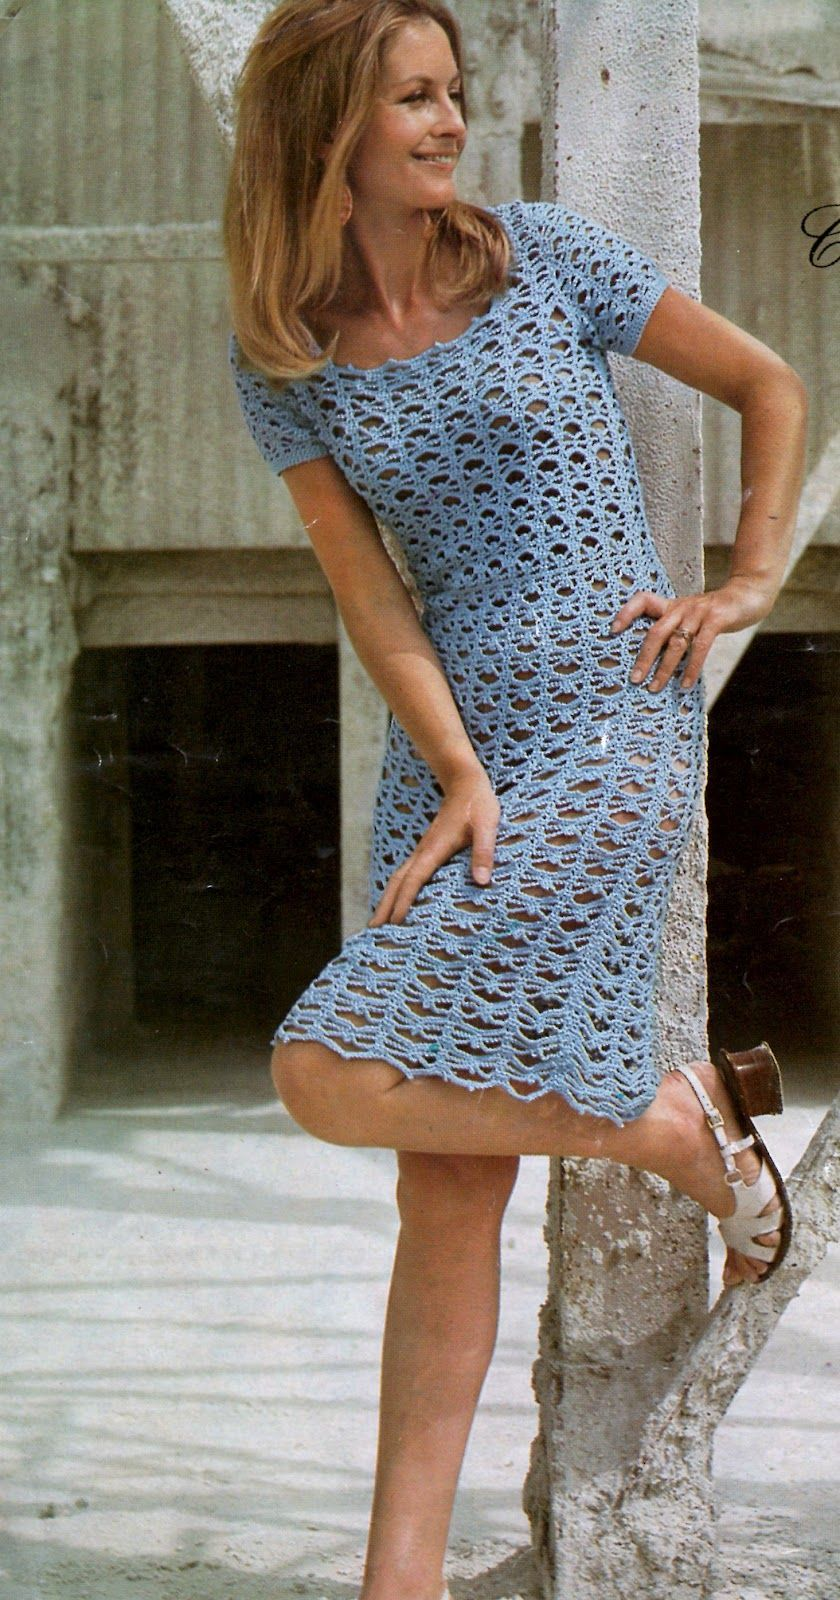 Crochet Dress Patterns For Women Vintage Crochet Dress Pattern By